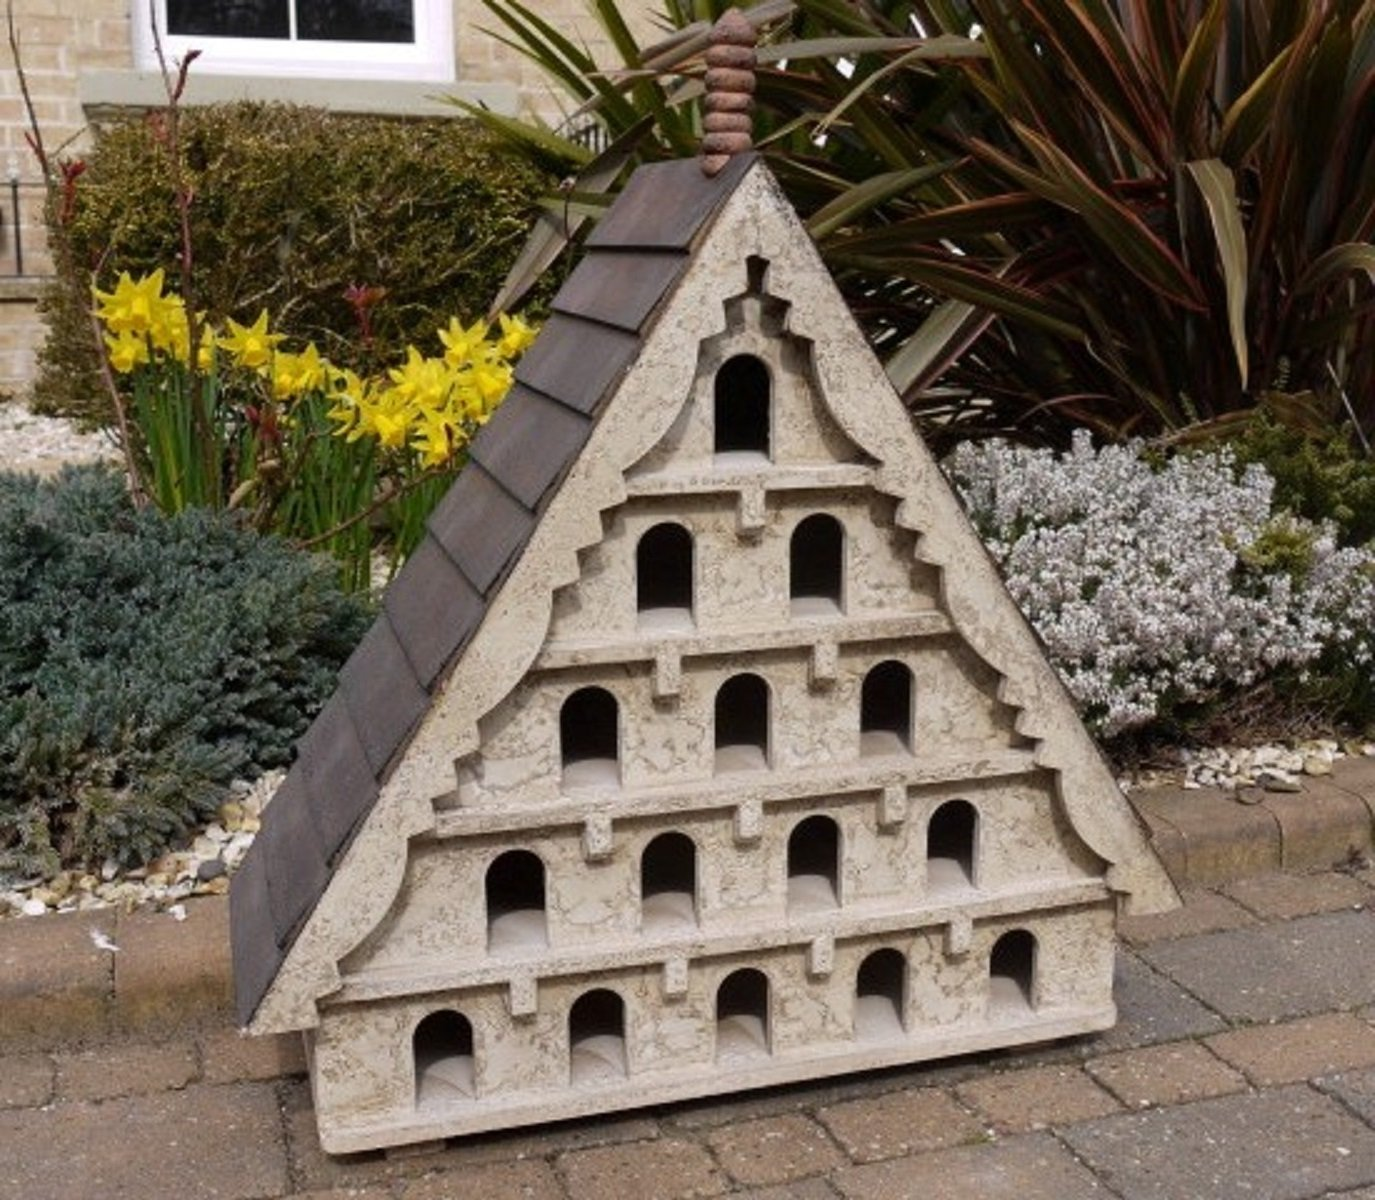 Antique style traditional vintage design wooden dovecote